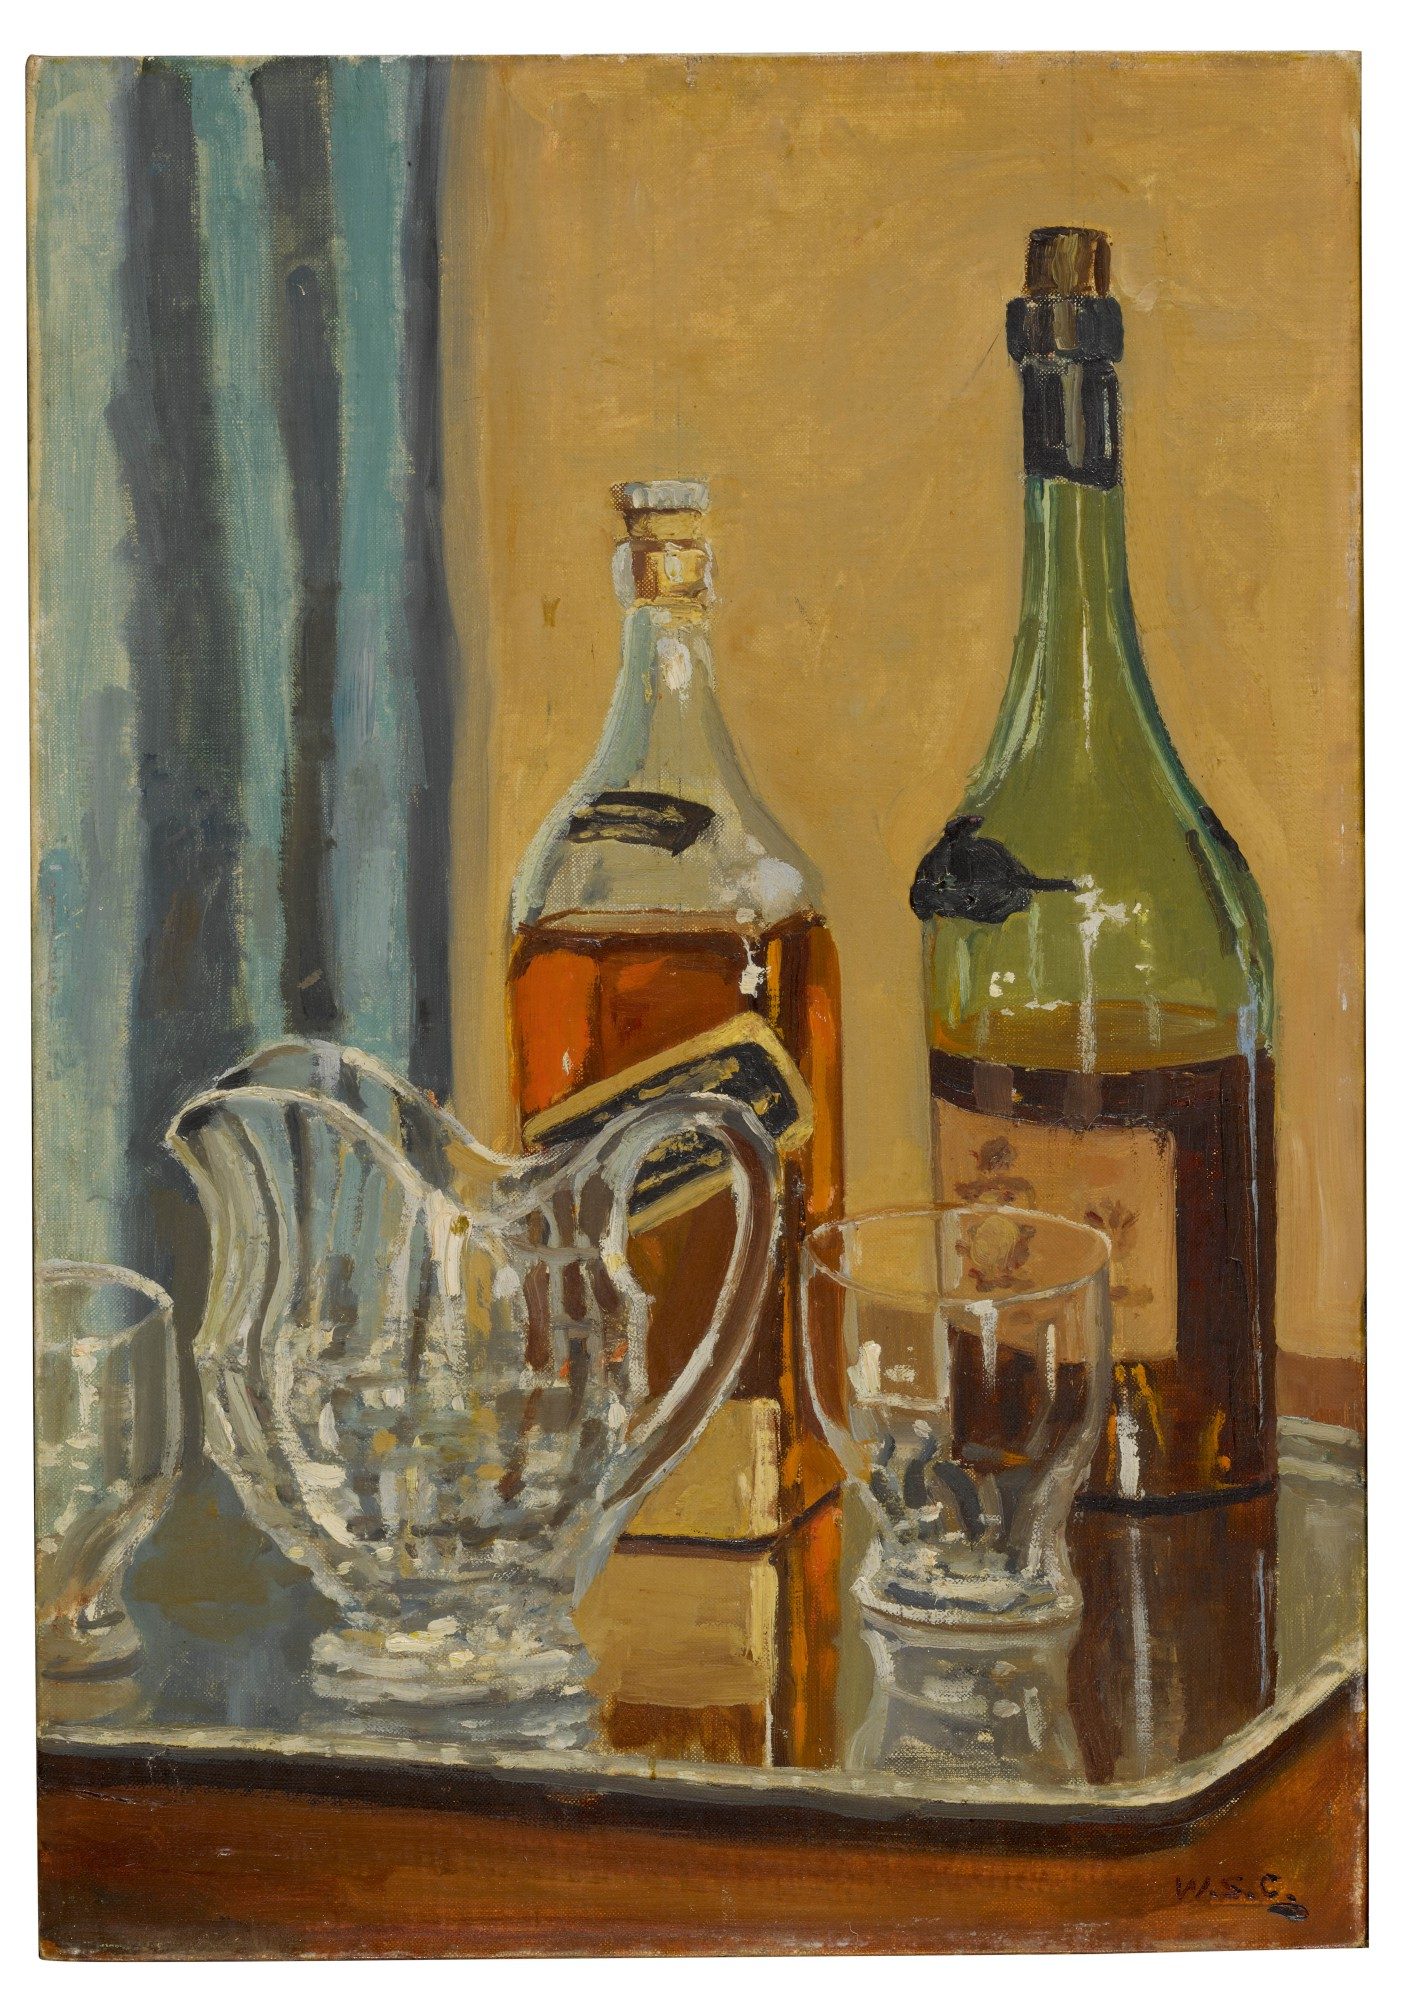 Churchill S Painting Of Favorite Whisky Goes On Sale